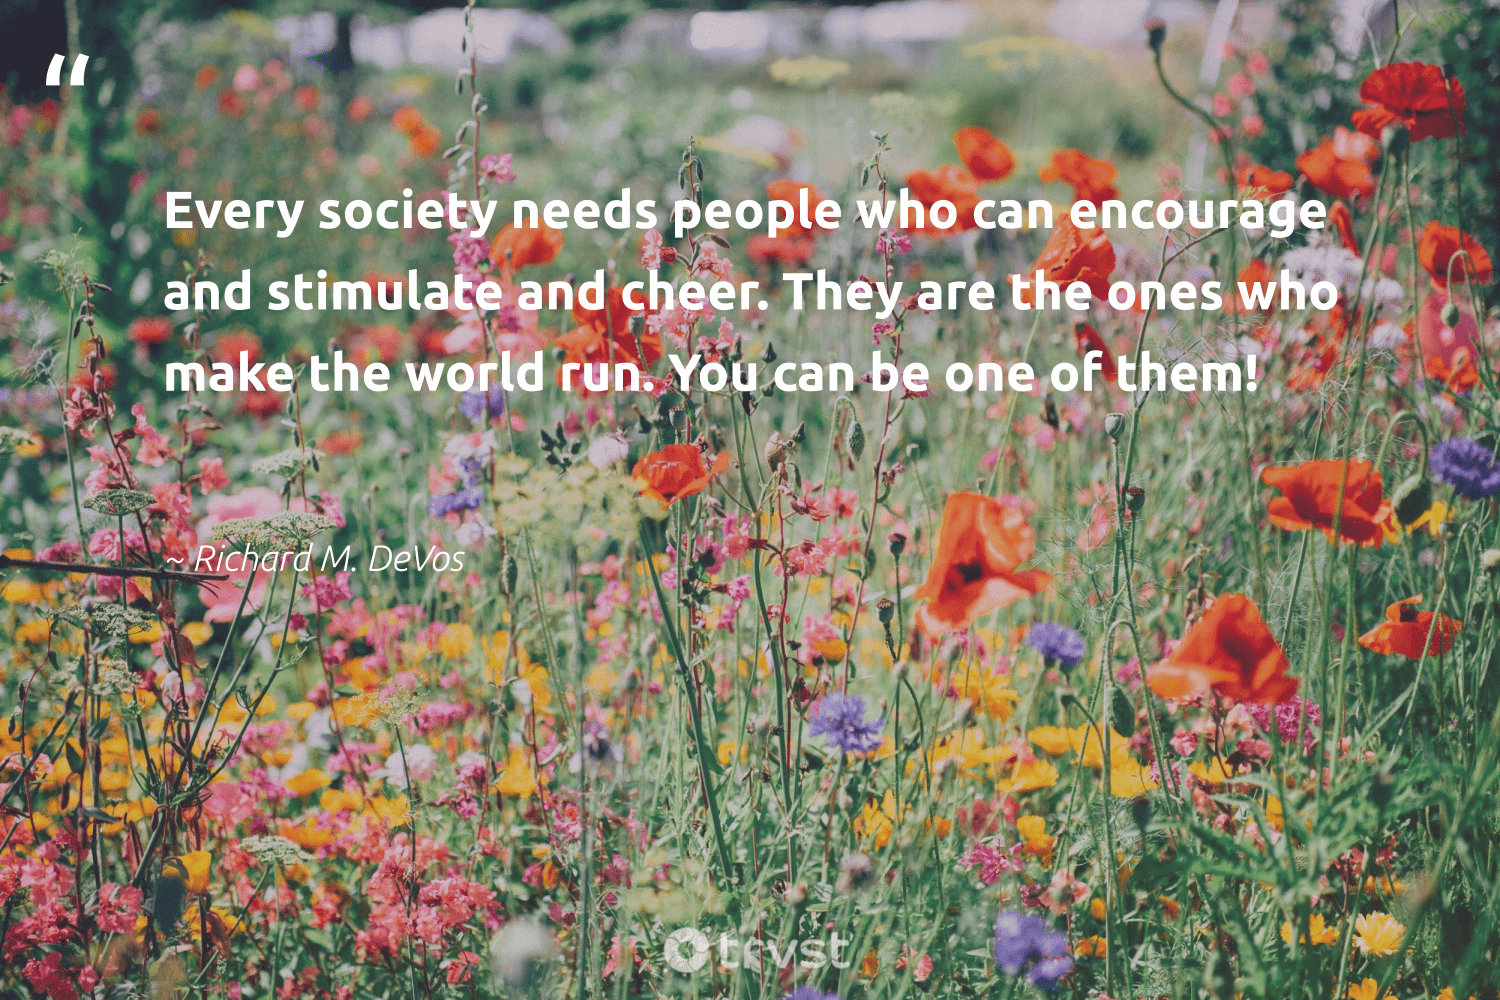 """""""Every society needs people who can encourage and stimulate and cheer. They are the ones who make the world run. You can be one of them!""""  - Richard M. DeVos #trvst #quotes #society #giveback #ecoconscious #strongercommunities #socialchange #makeadifference #impact #communities #dotherightthing #bethechange"""